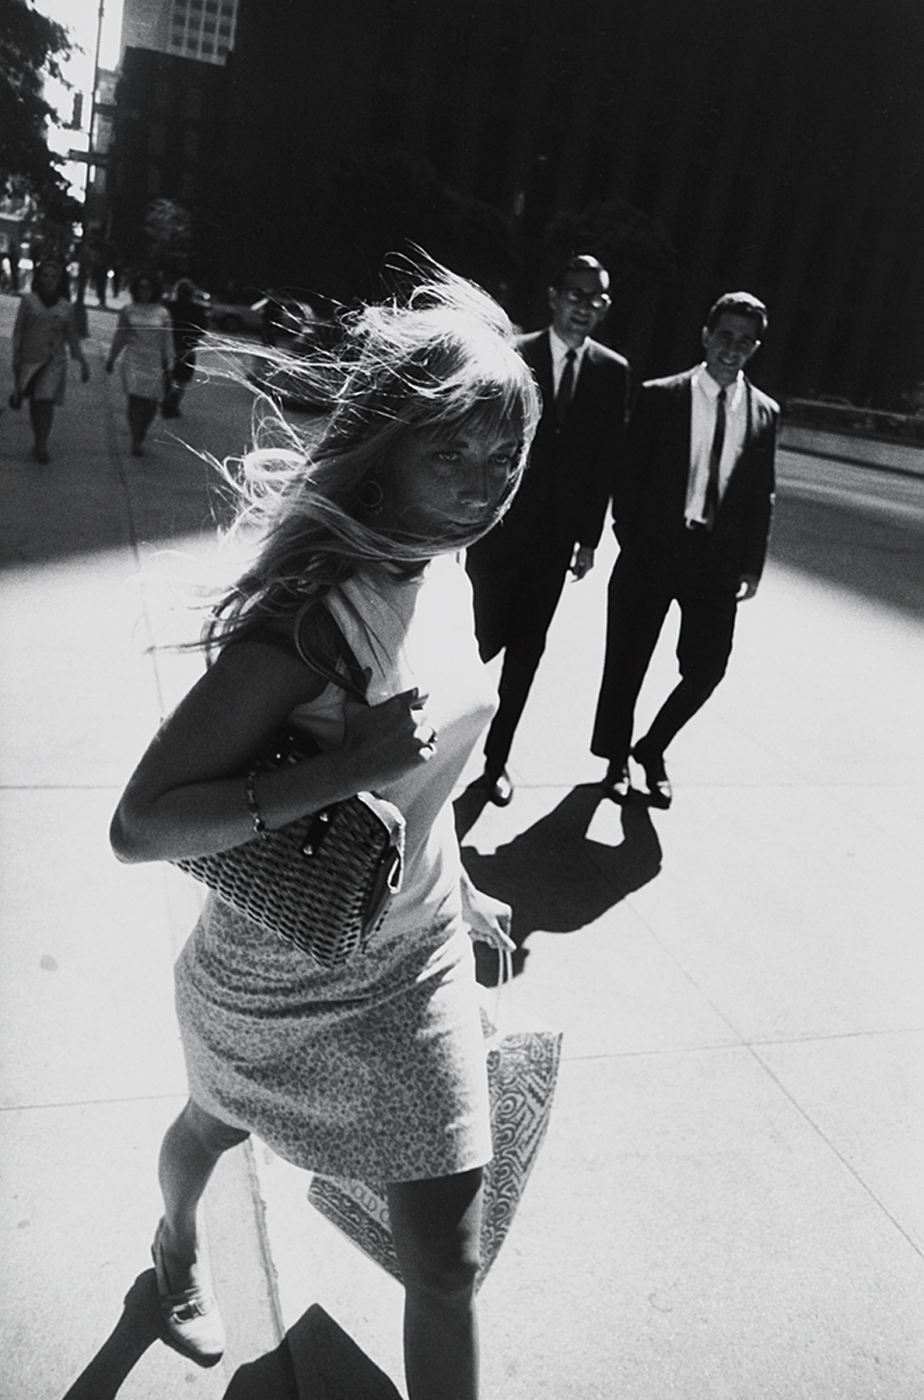 11._New_York,_1965_Winogrand